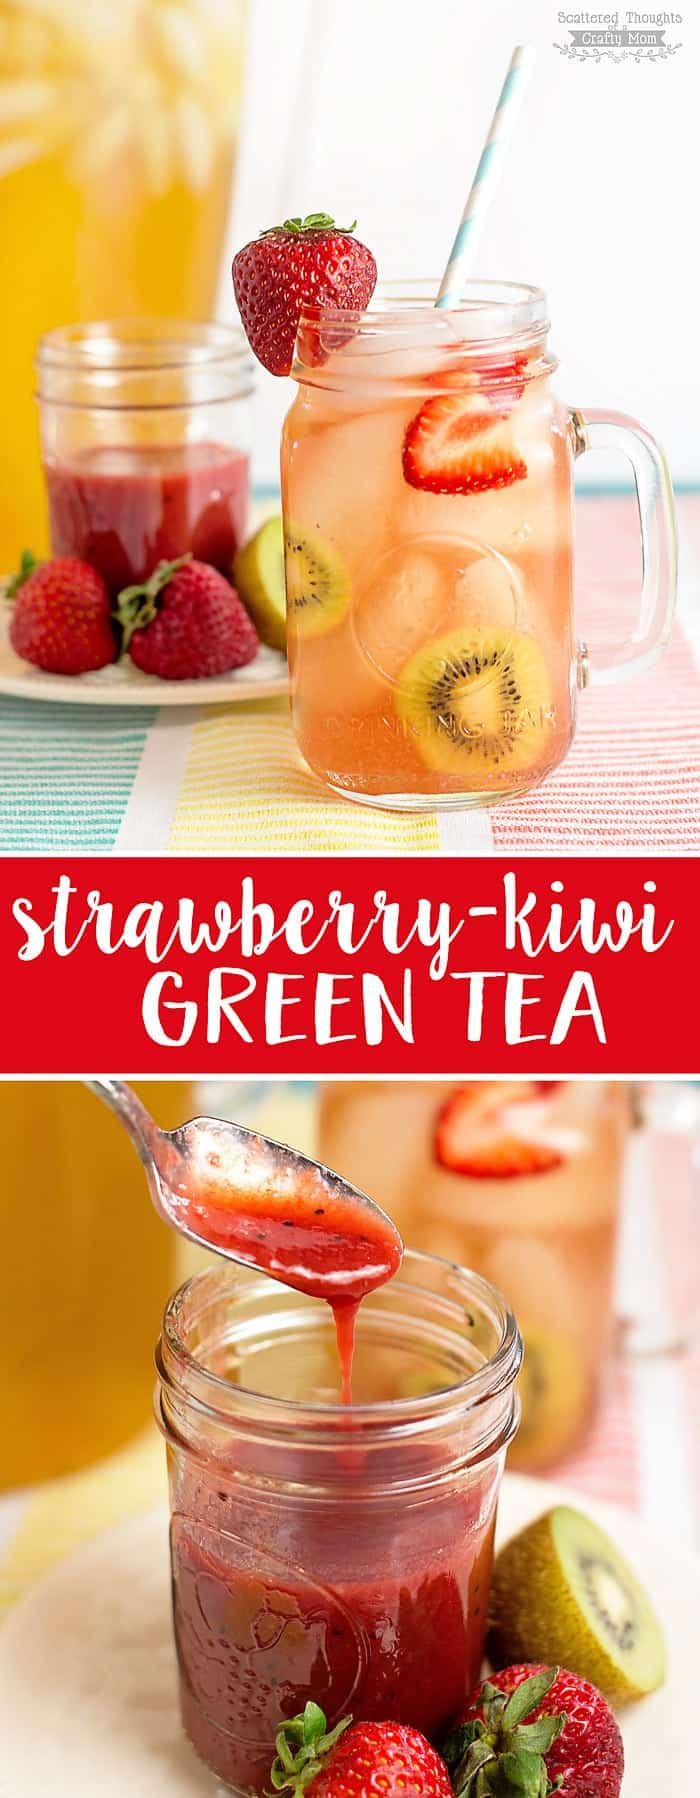 Make the switch to green tea a little easier (and yummier) with this DIY Strawberry-Kiwi Green Tea Recipe!